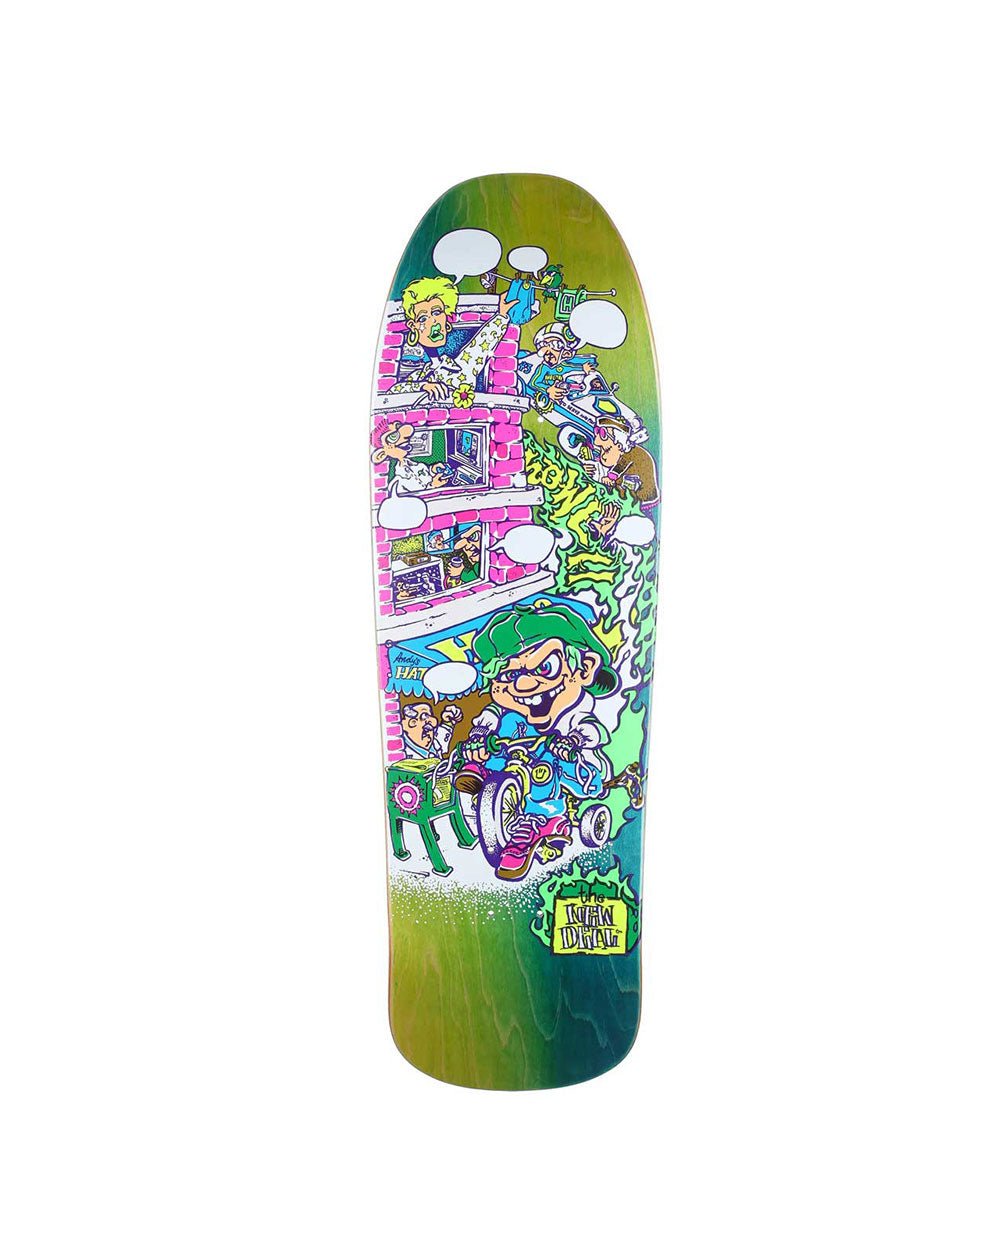 New Deal Howell Tricycle Kid Neon Skateboard Deck - Threadbox